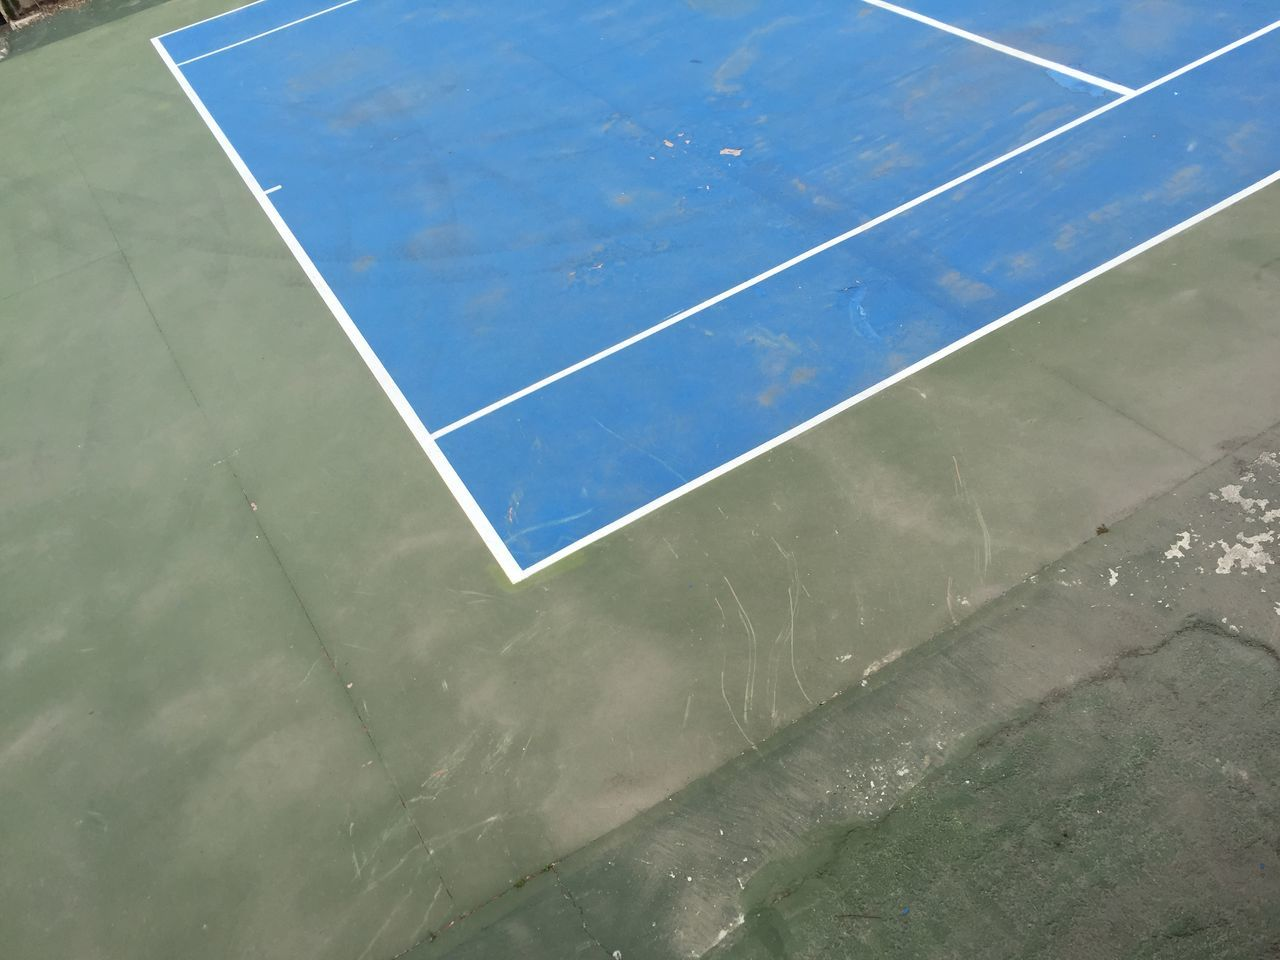 court, sport, high angle view, day, tennis, net - sports equipment, no people, outdoors, basketball - sport, team sport, competitive sport, racket sport, soccer field, close-up